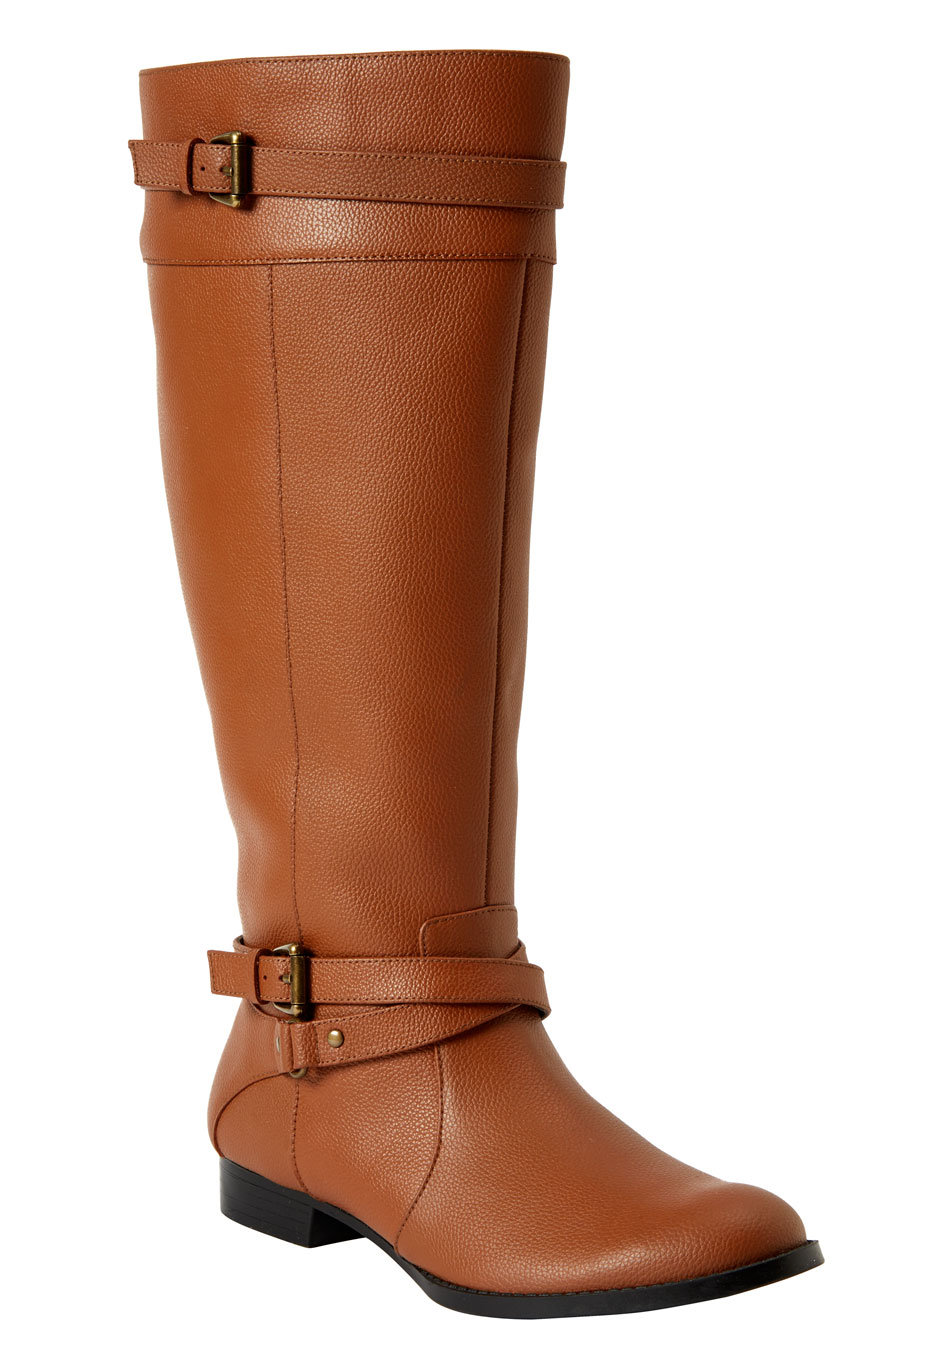 3bd9f461e The Janis Wide Calf Boot by Comfortview®| Plus Size Tall Boots ...